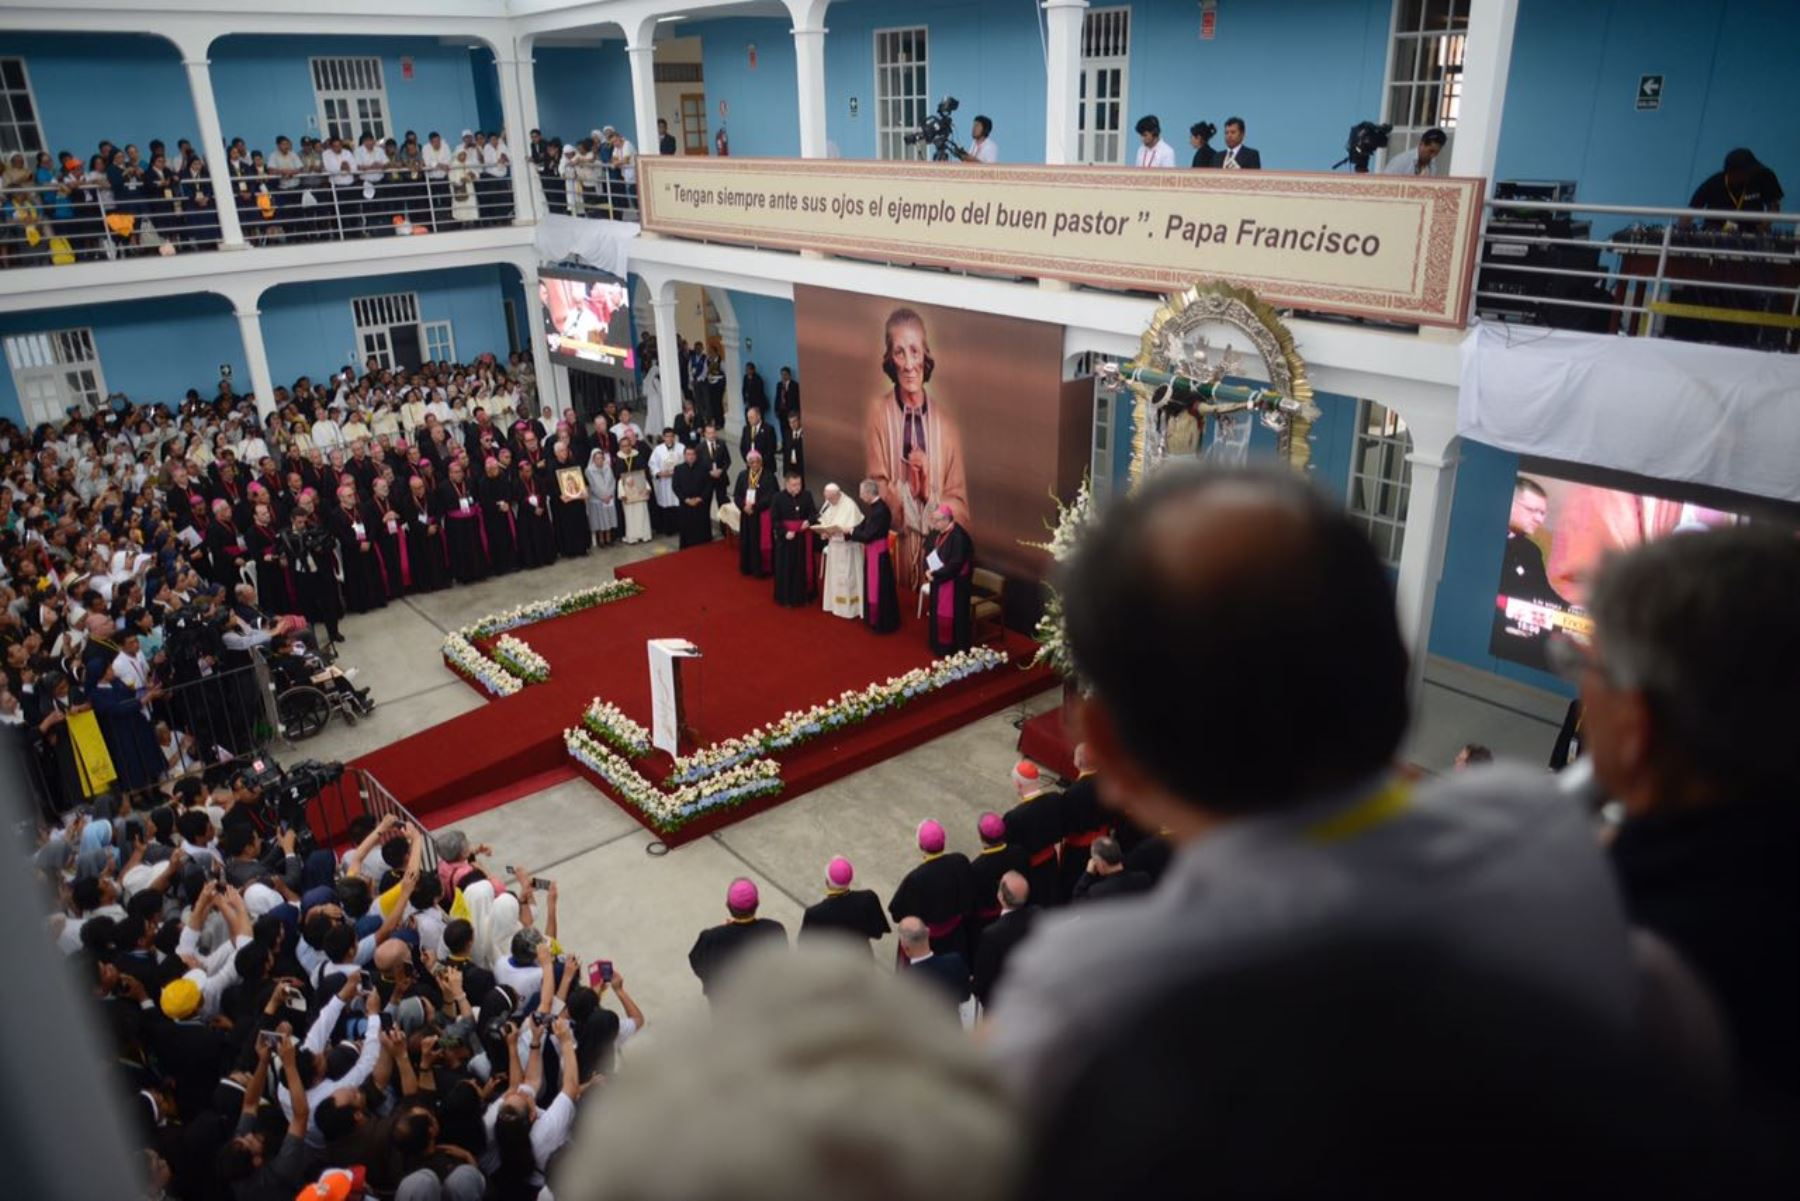 Pope warns Latin America about corruption, mentions Odebrecht